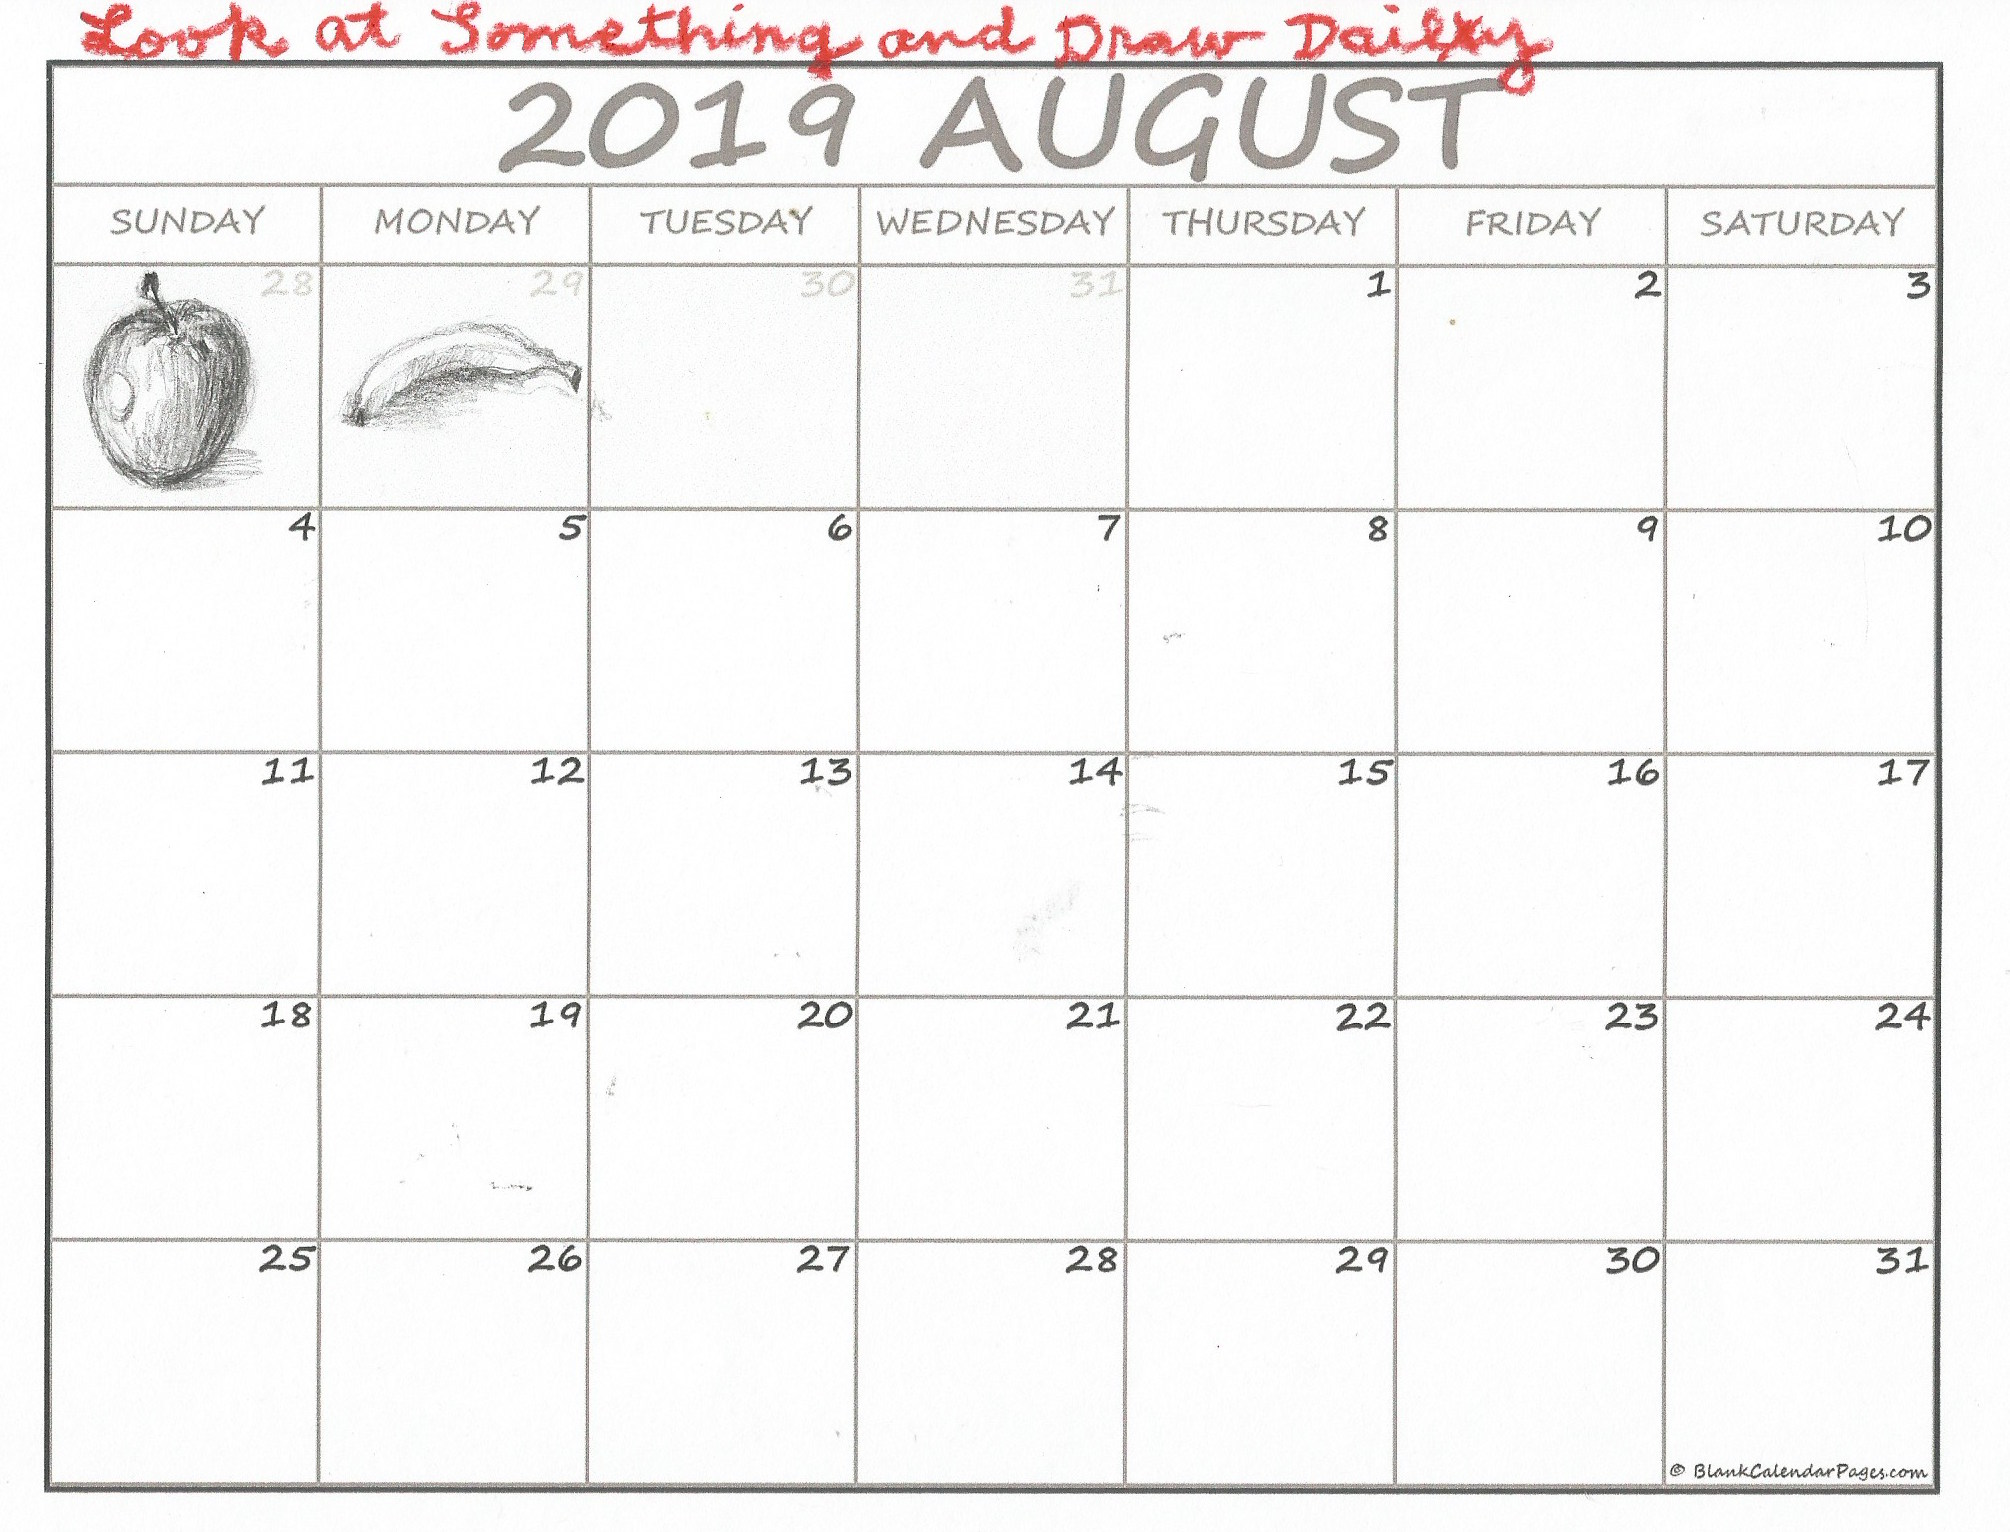 Aug. Calendar for Drawing.jpeg